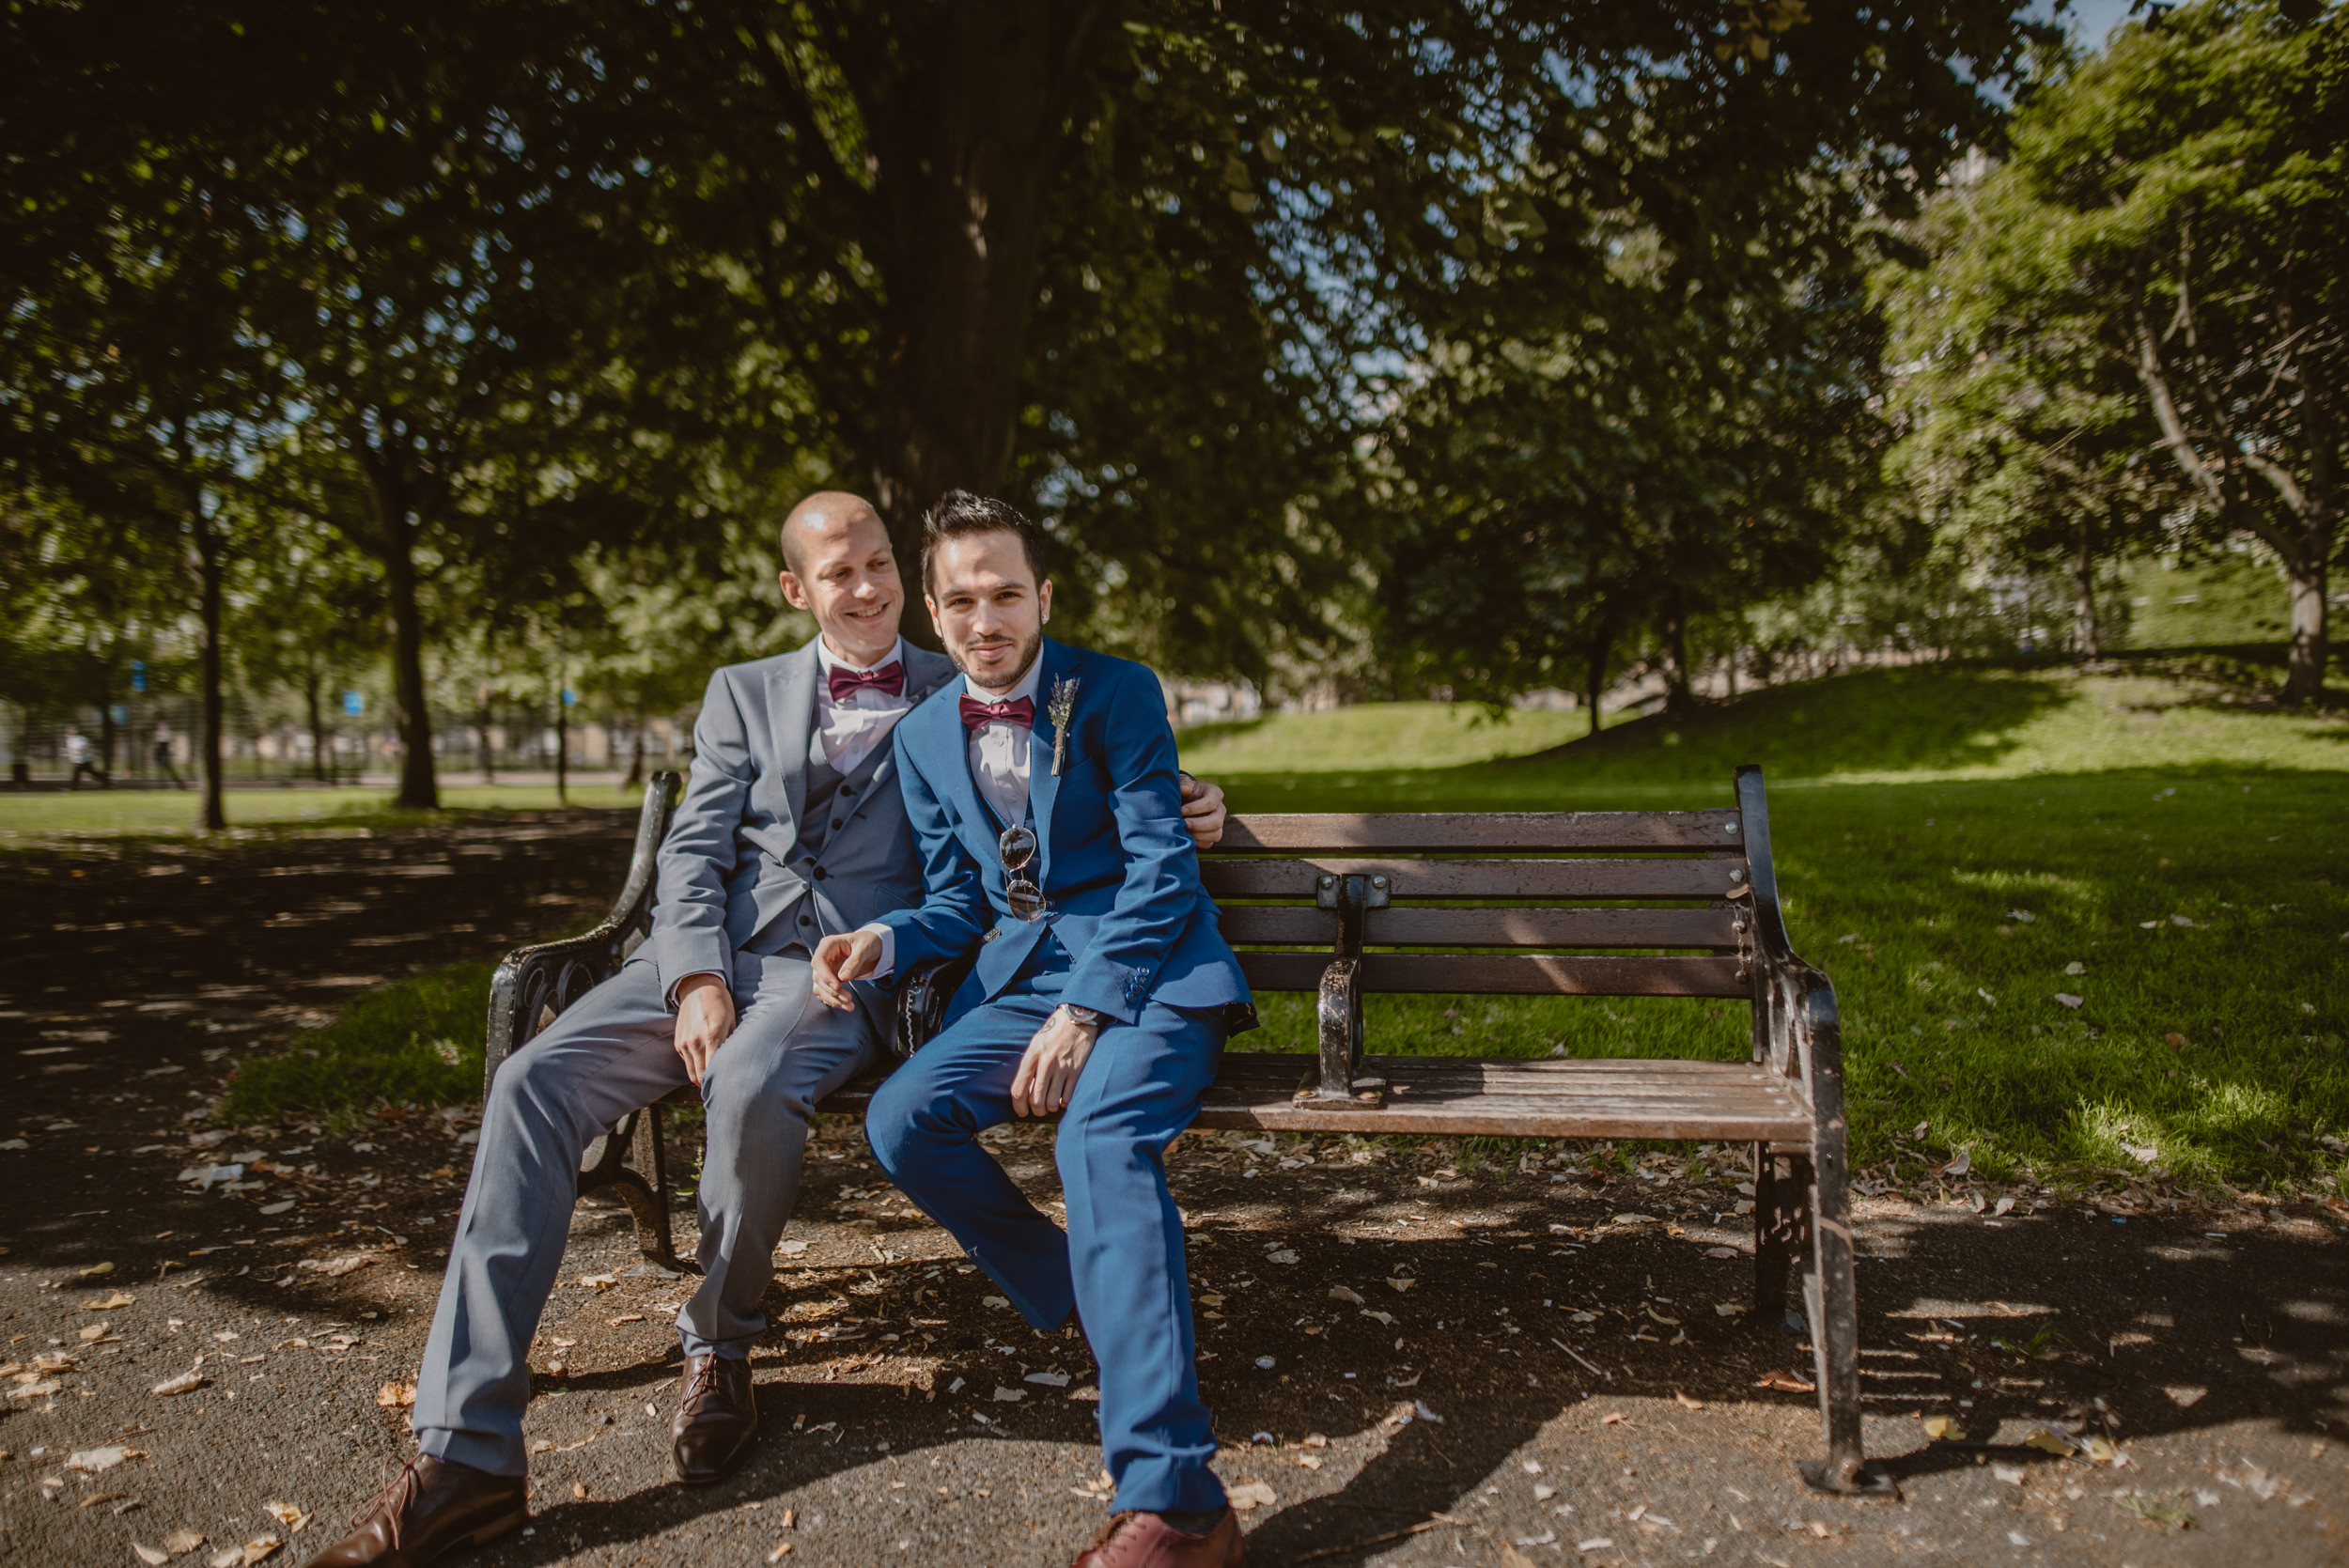 Rhys-and-Alex-Wedding-in-London-Manu-Mendoza-Wedding-Photography-069.jpg